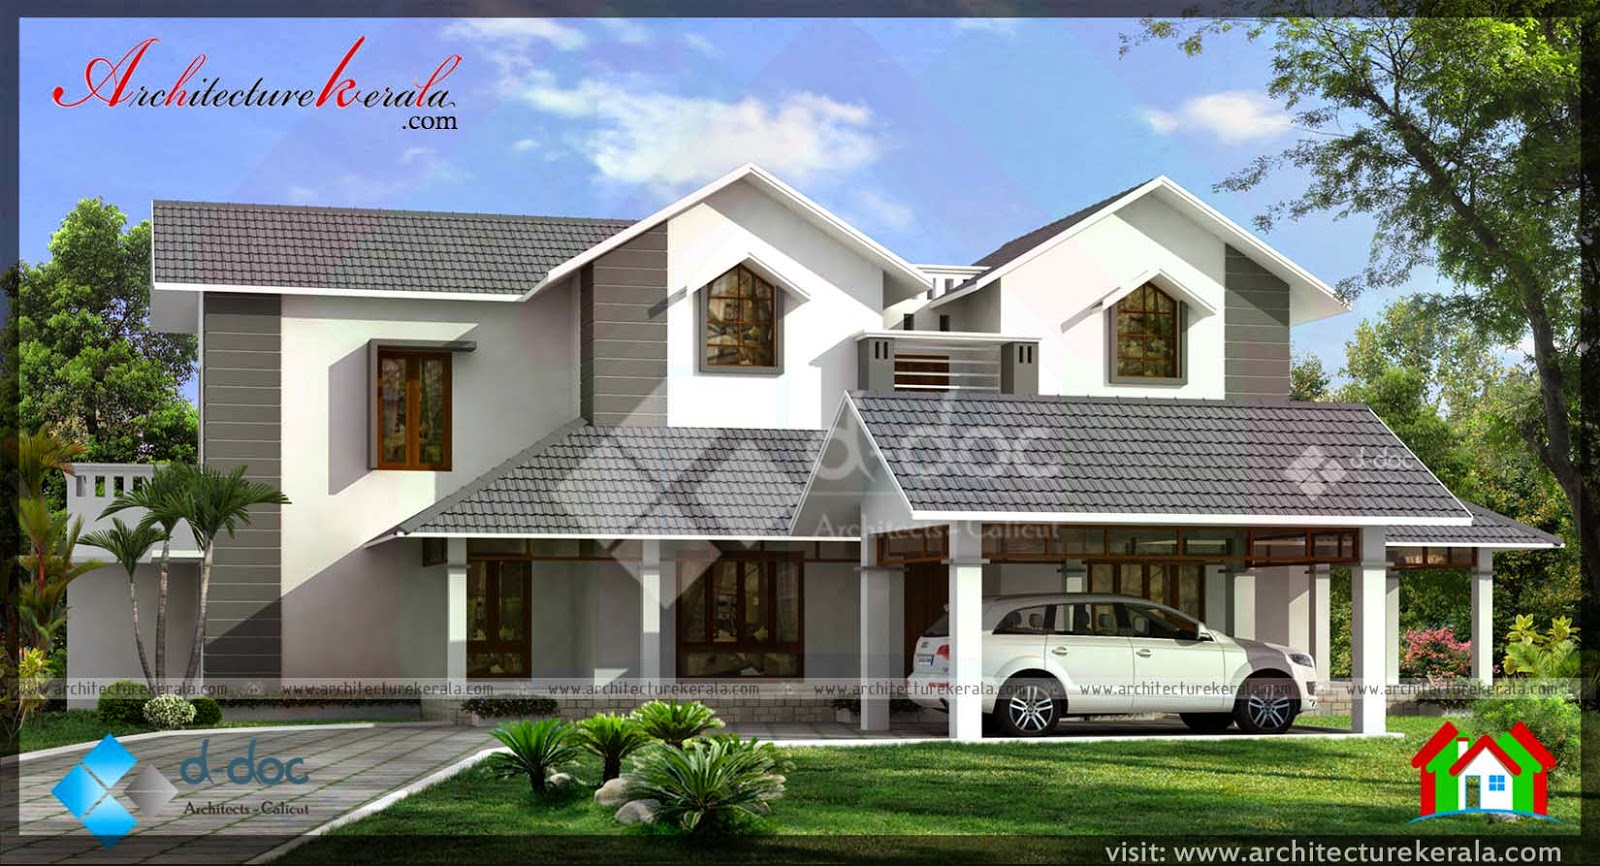 Contemporary house in 3000 sq ft architecture kerala for 3000 sq ft house plans kerala